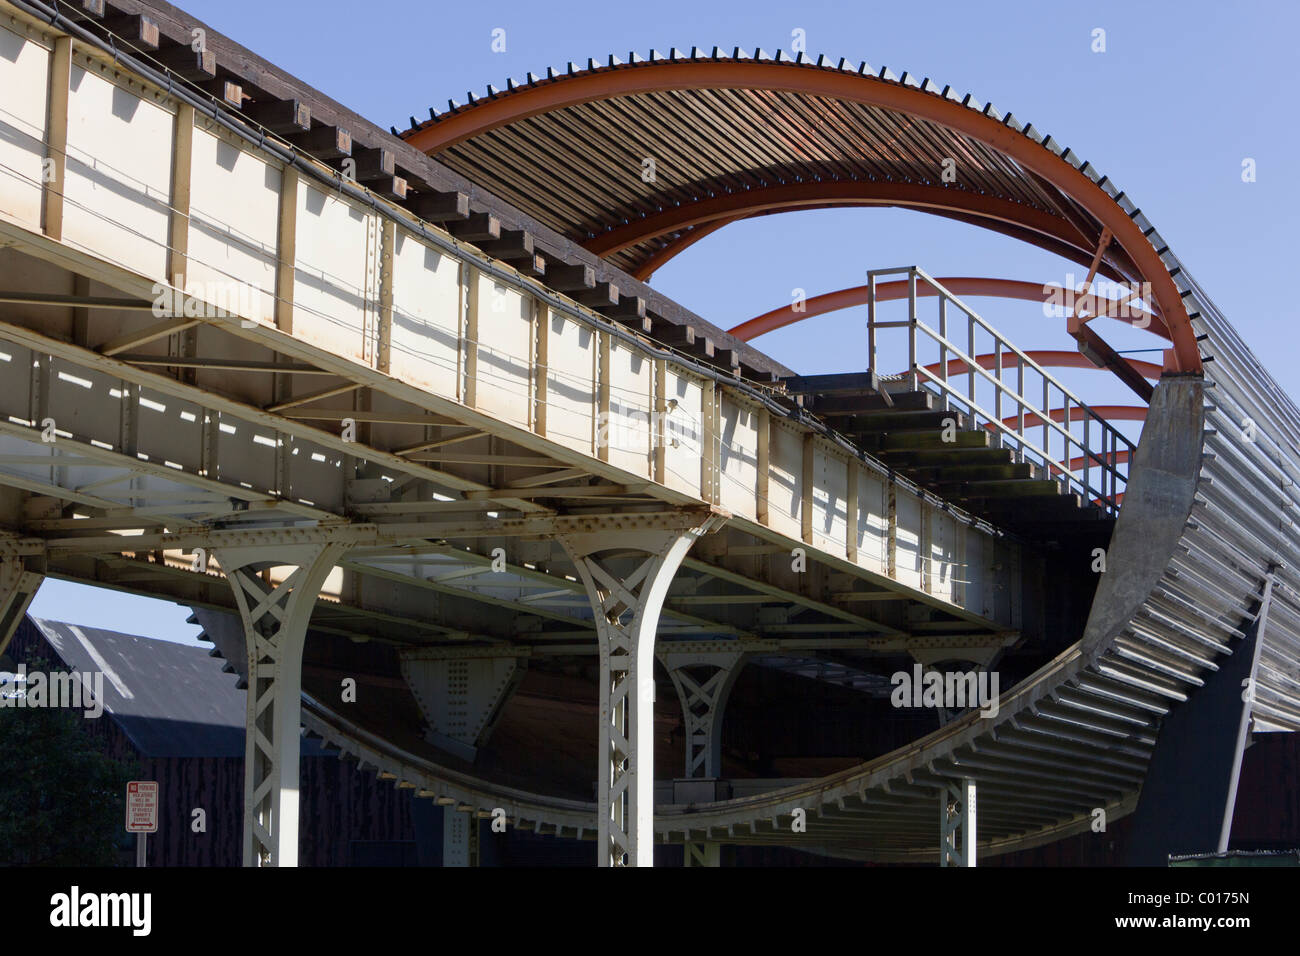 enclosed subway track at McCormick Tribune Campus Center, Illinois Institute of Technology, Chicago, USA - Stock Image